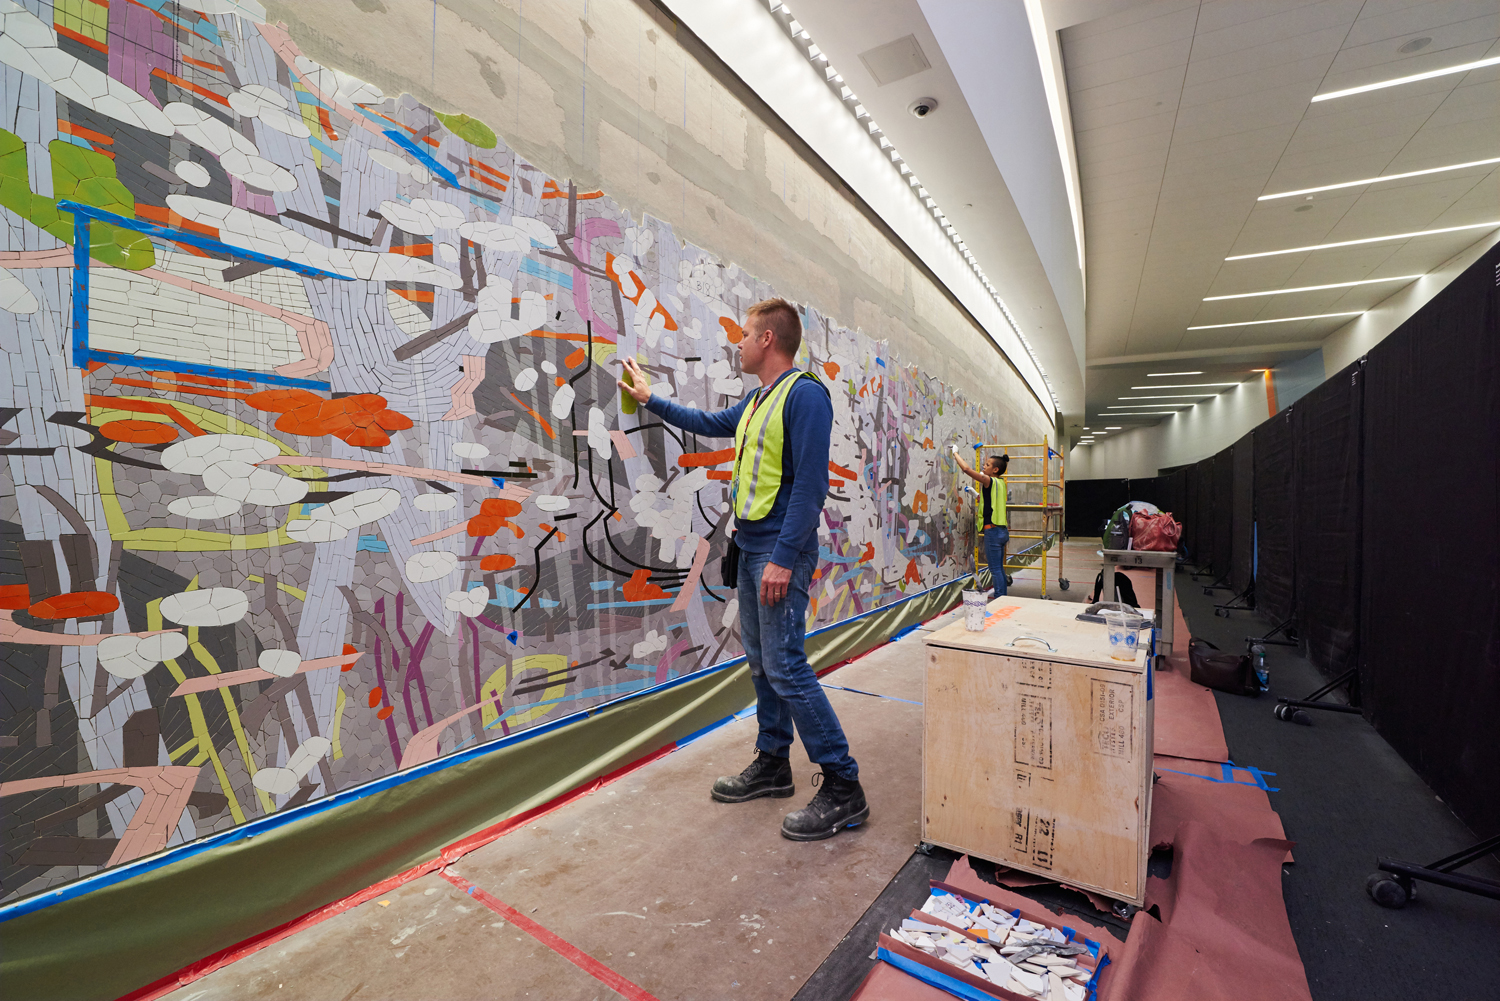 Mike checks the surface of the mural. The blue rectangle indicates a grout test area.